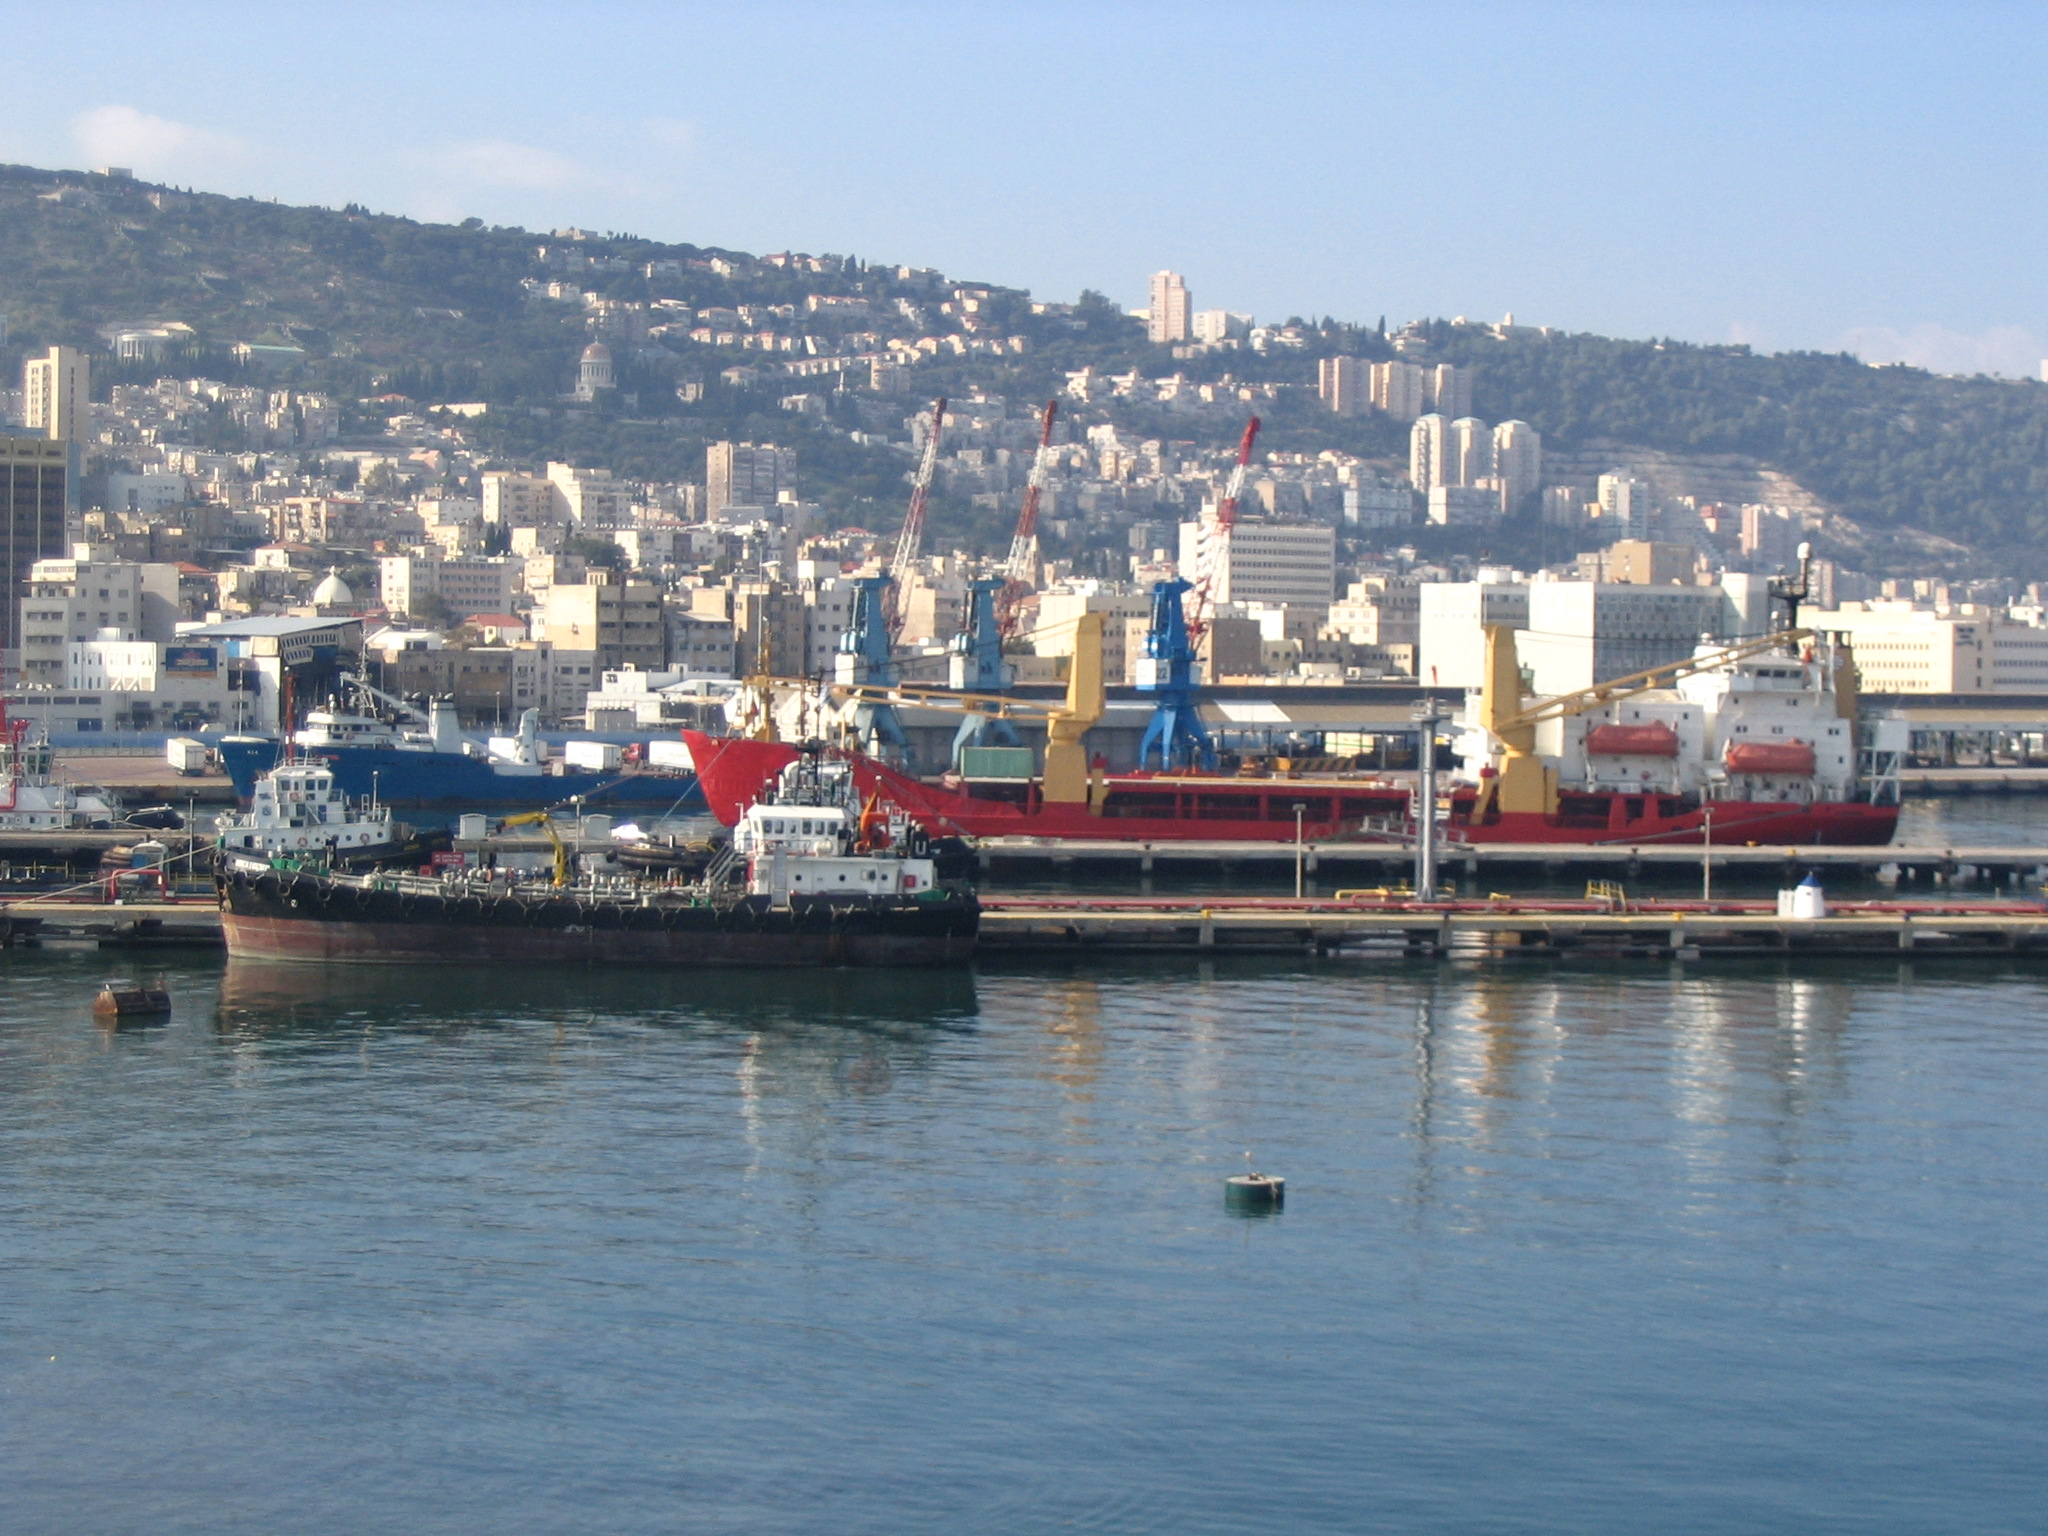 http://upload.wikimedia.org/wikipedia/commons/d/d3/Port_of_Haifa,_viewed_from_the_sea.jpg